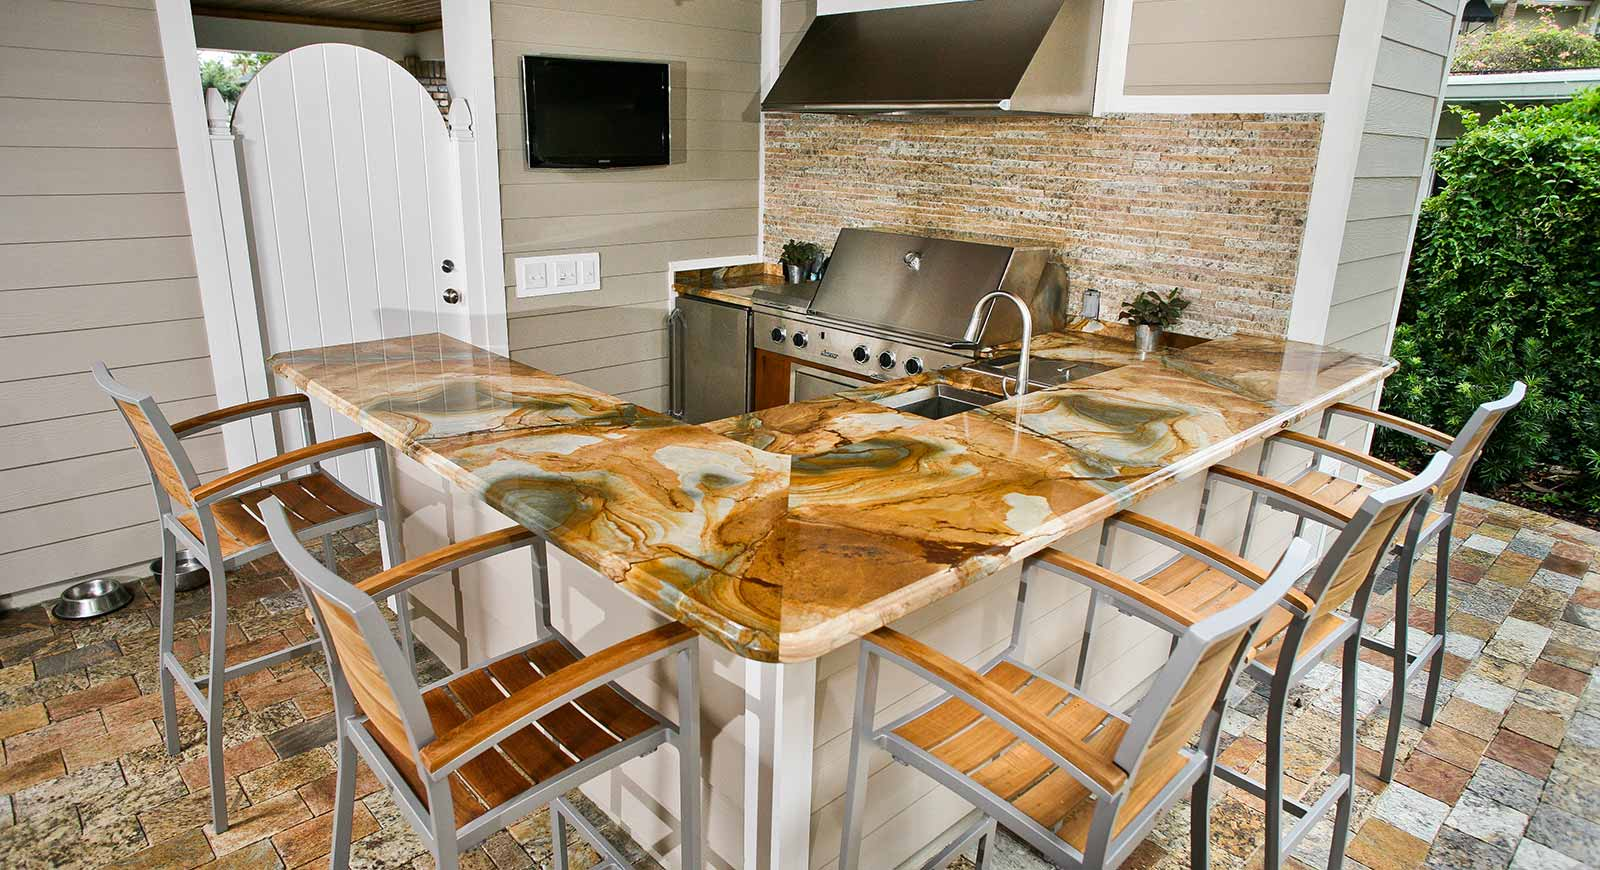 Outdoor Countertops Material Outdoor Kitchen Countertops Orlando Adp Surfaces